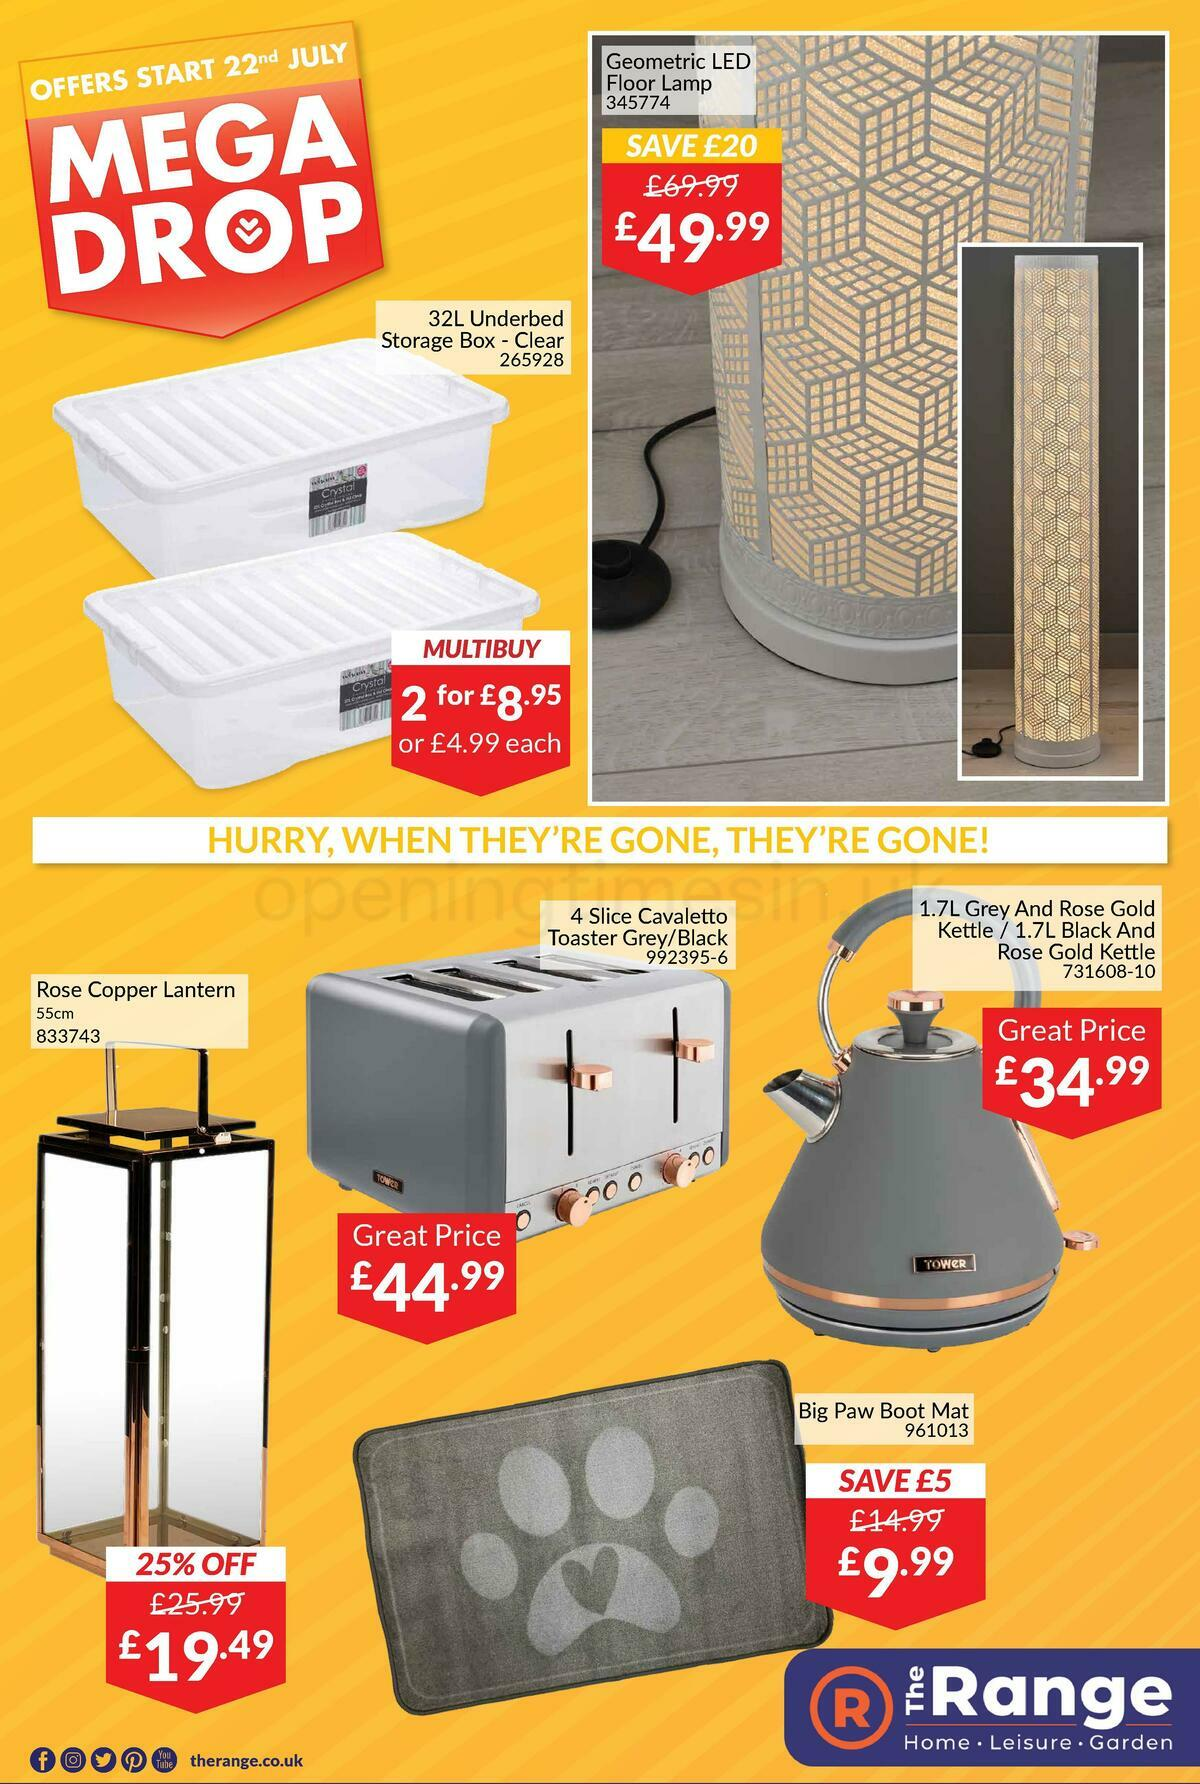 The Range Offers from July 22